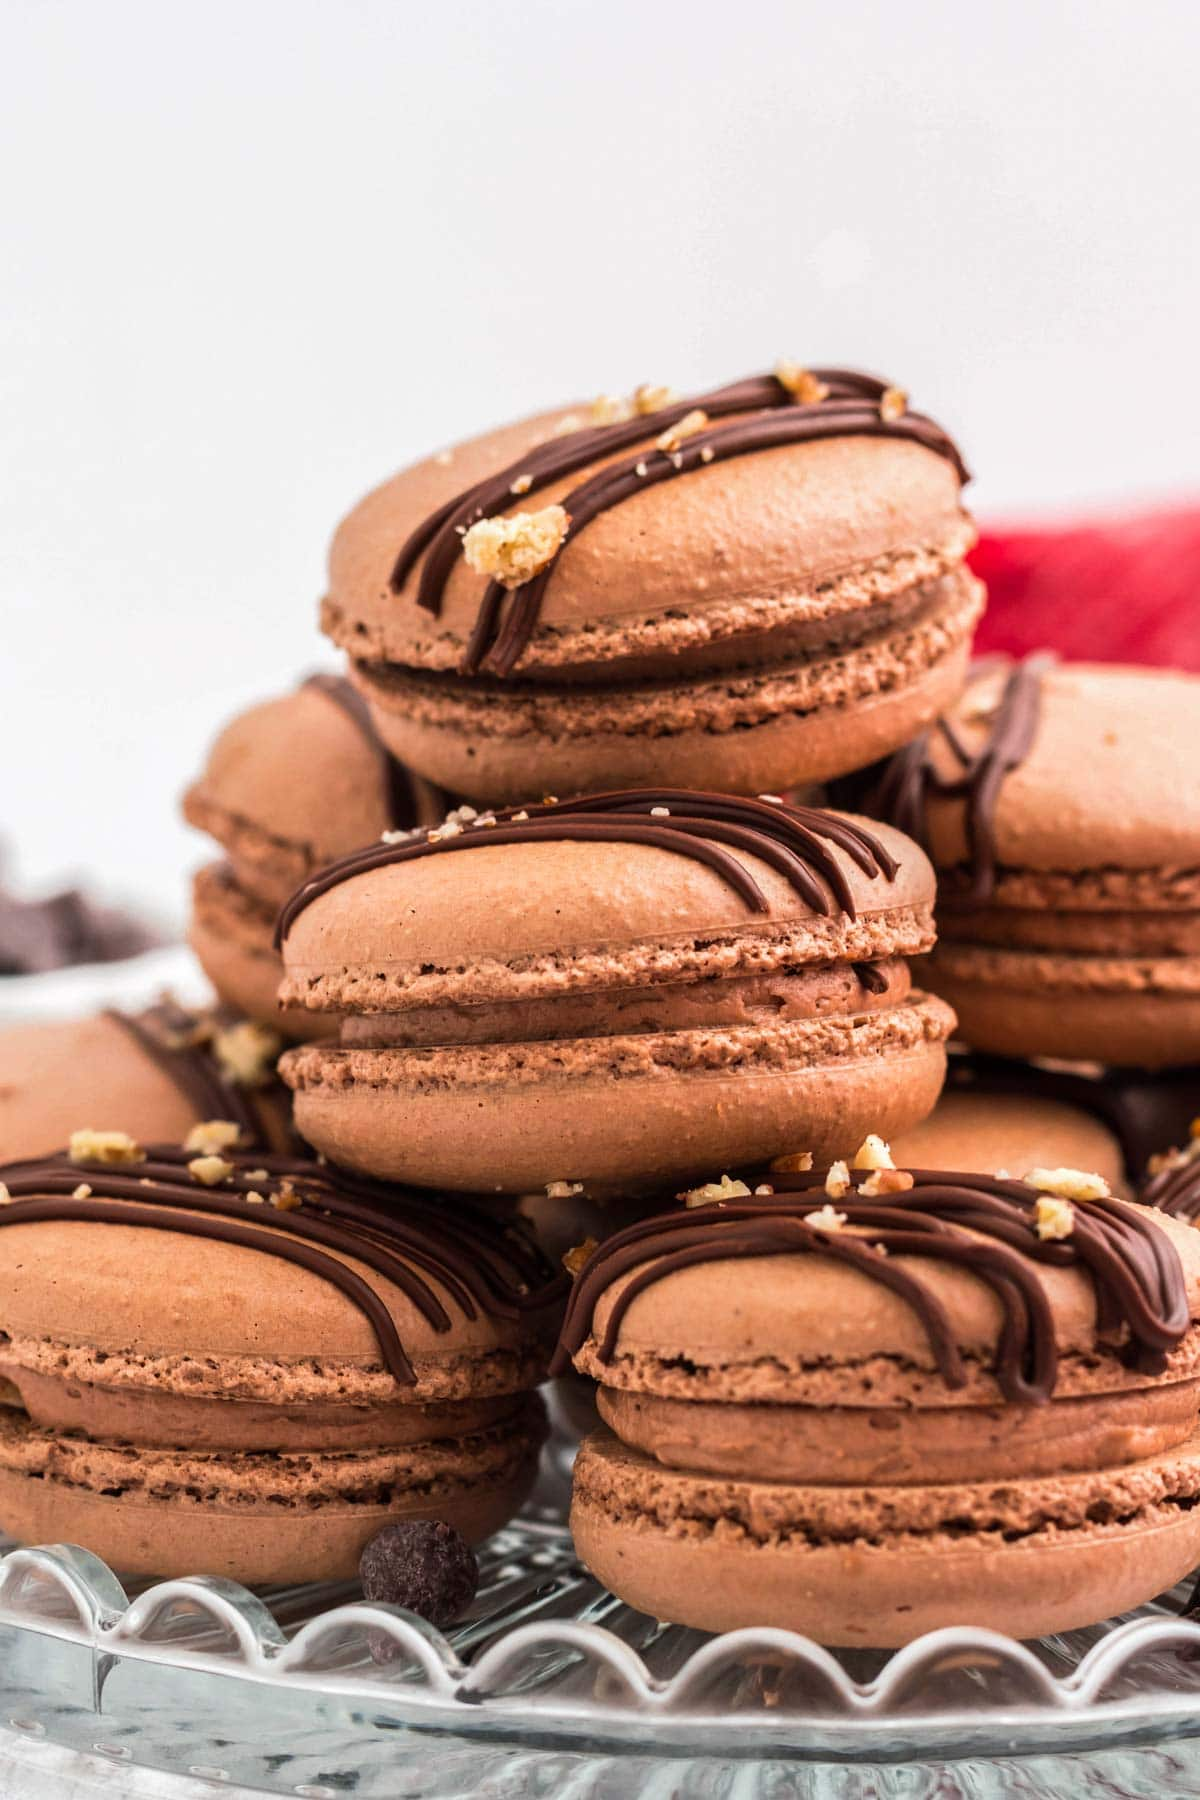 A platter with chocolate macarons stacked.